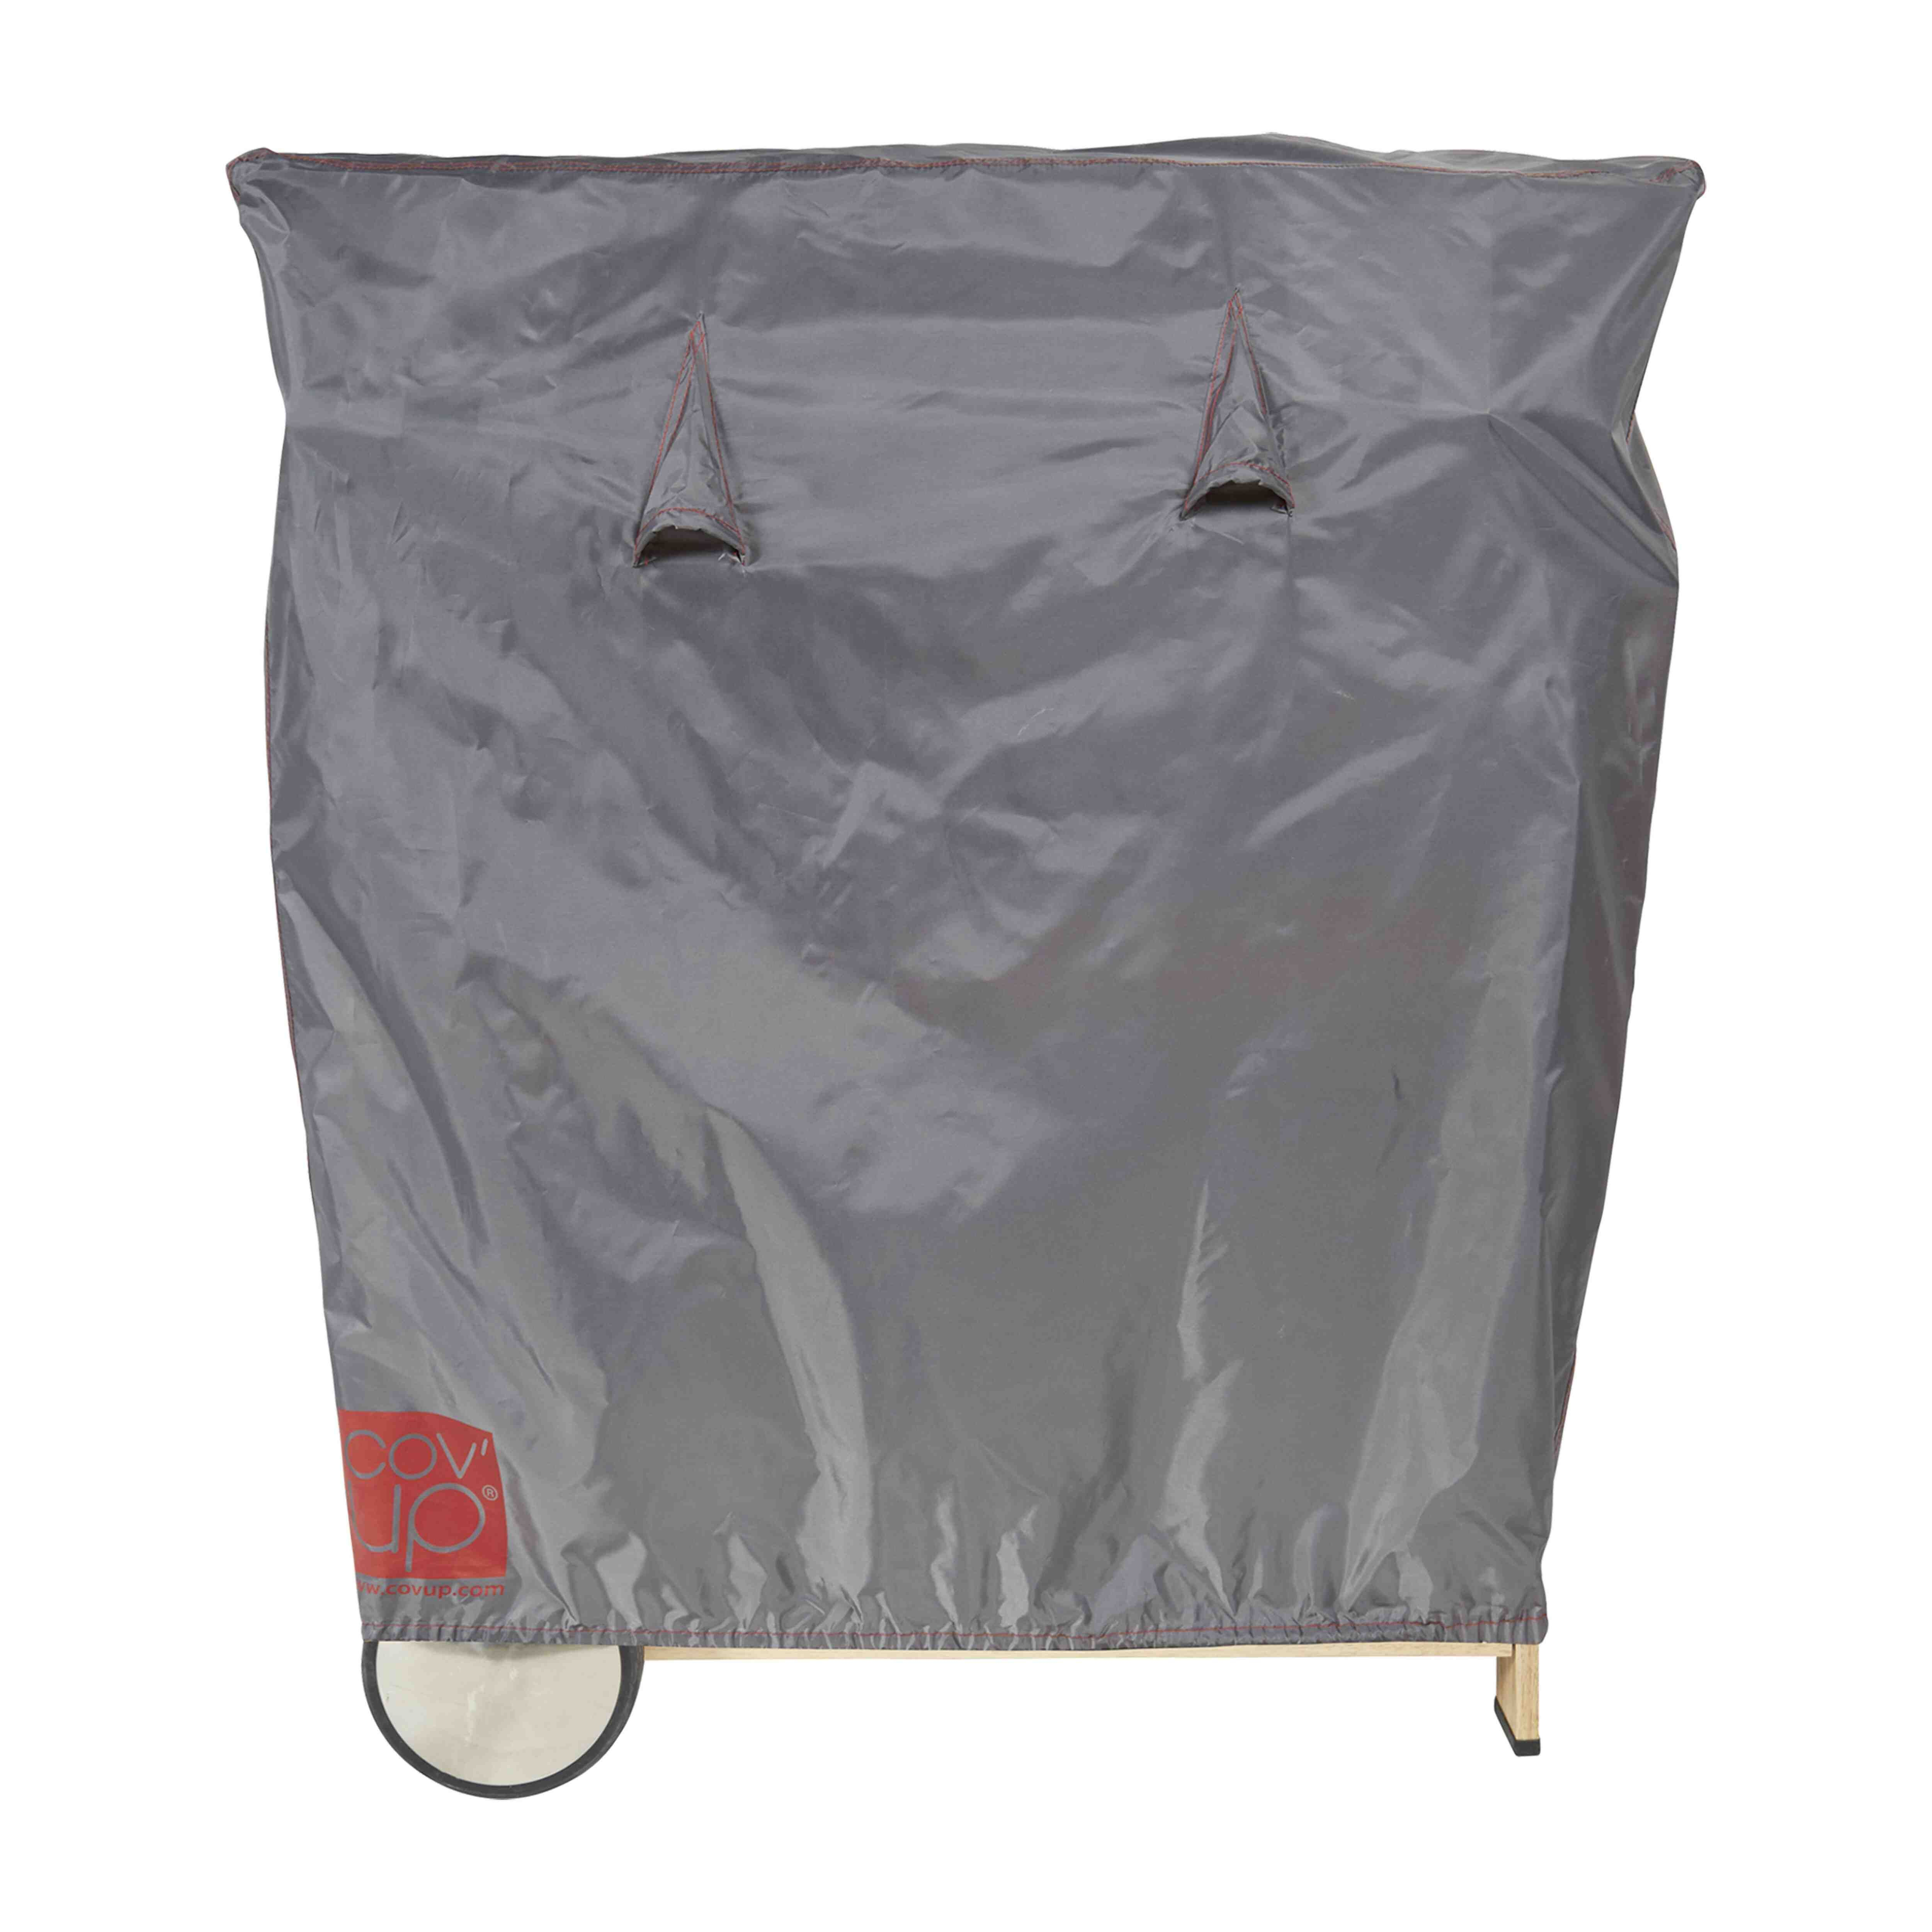 Housse de protection barbecue L en polyester gris